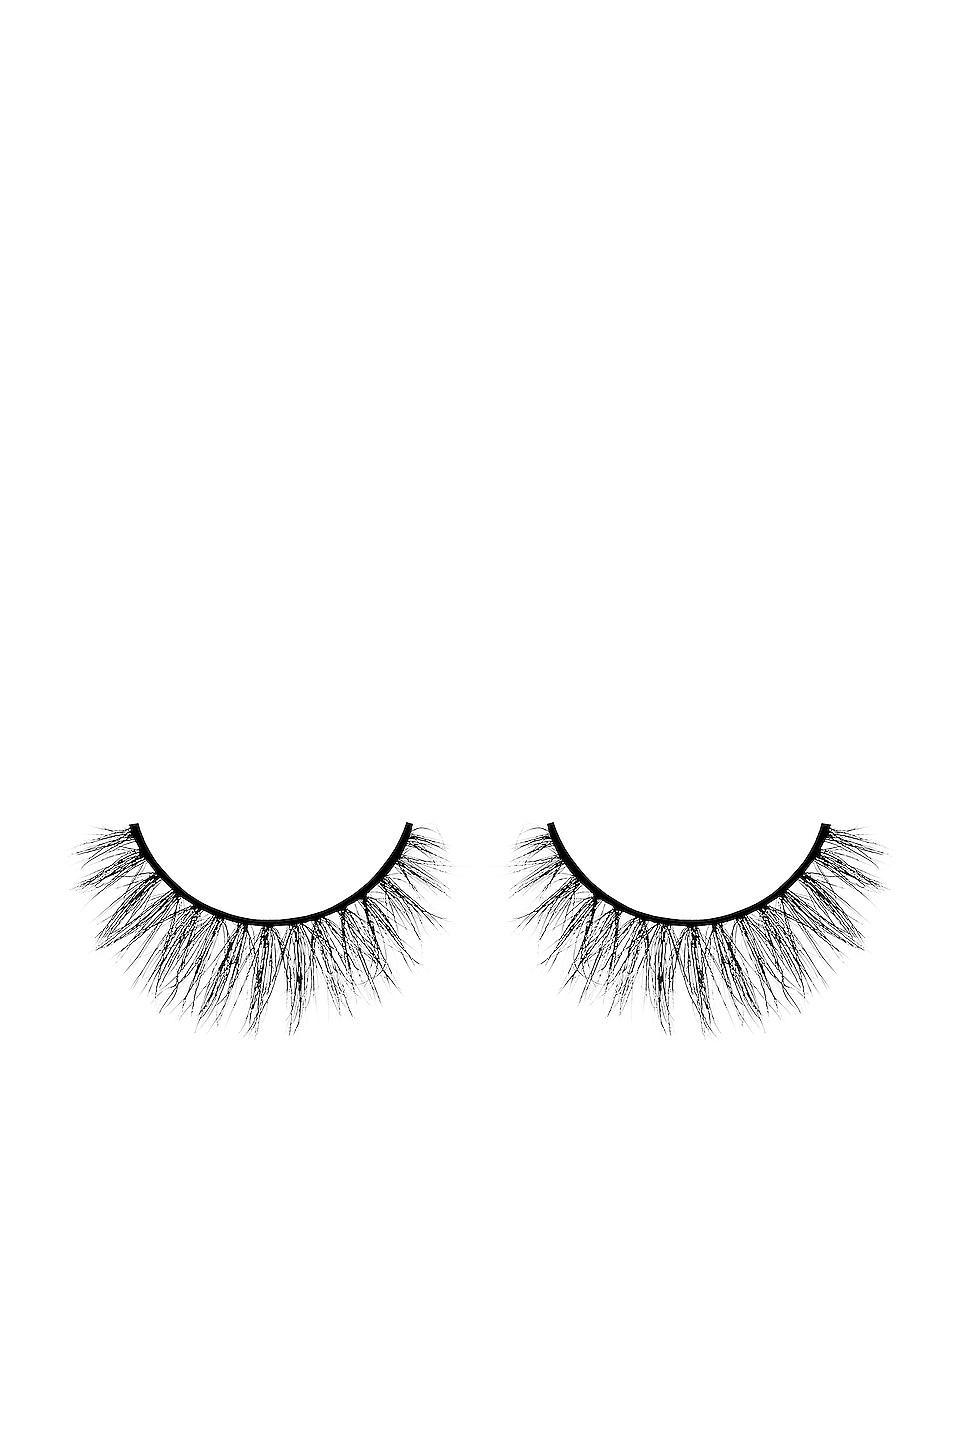 Artemes Lash Love and Light Premium Pony Lashes